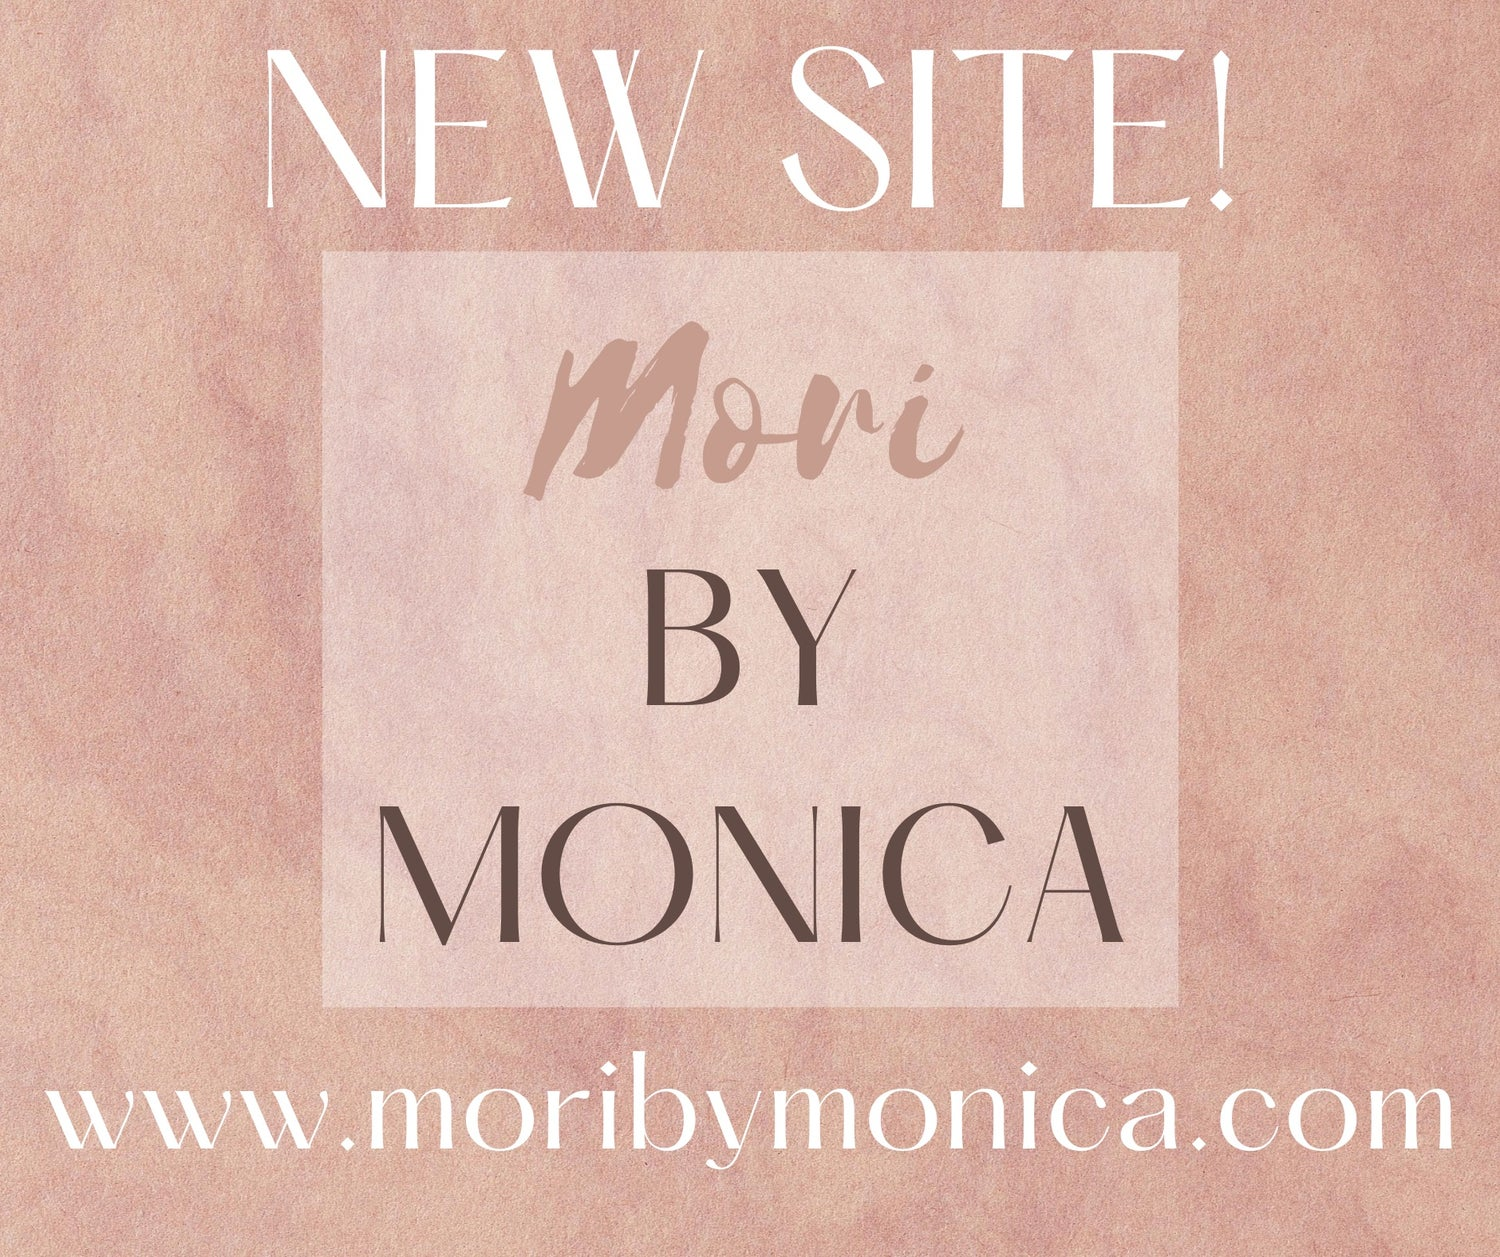 Image of !! NEW SITE LOCATION !!